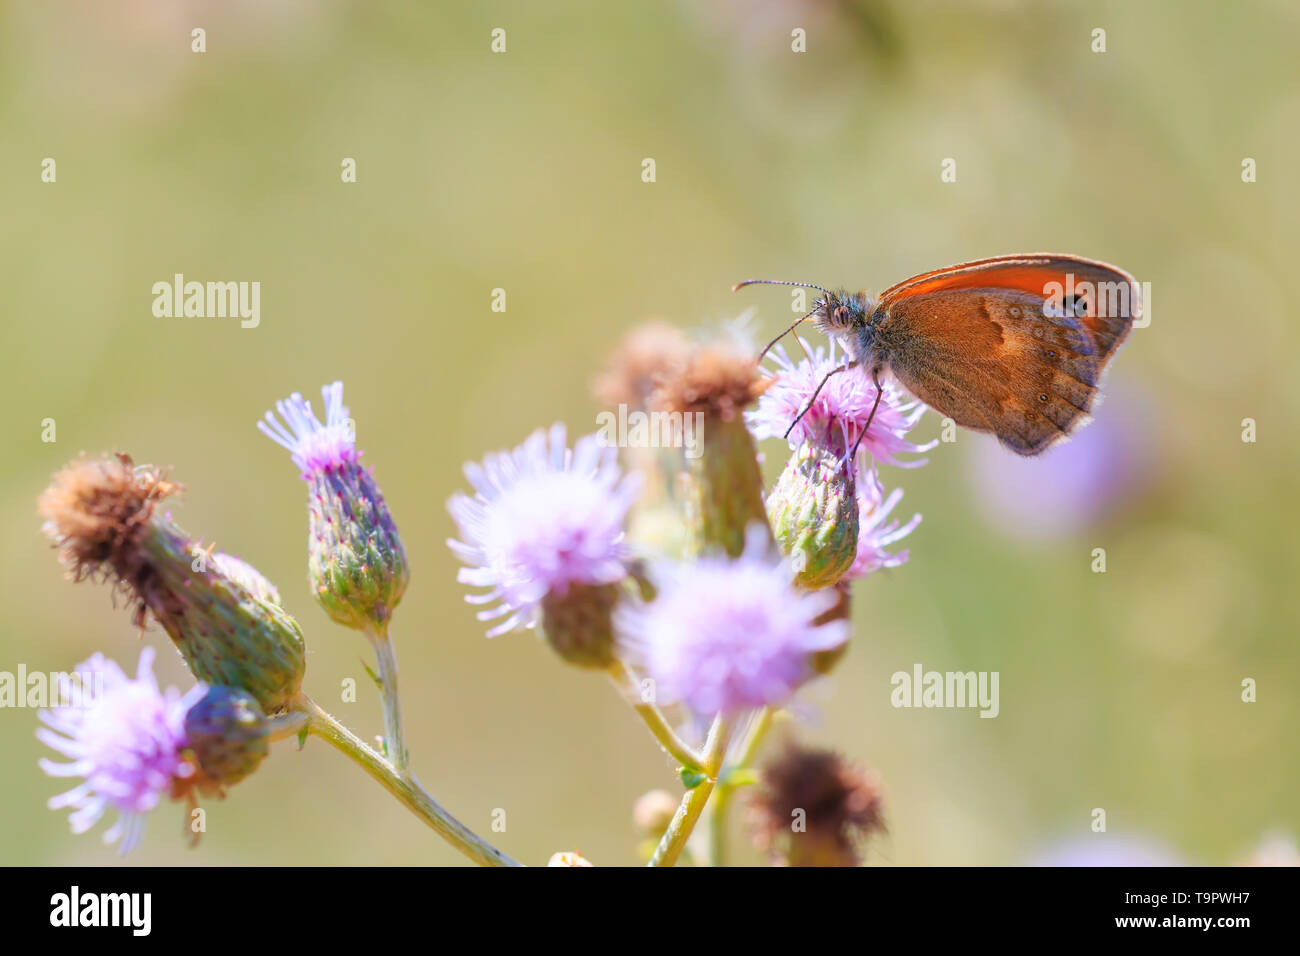 Side view wings close up of a Meadow Brown butterfly (Maniola jurtina) feeding on a purple Thistle flower - Stock Image